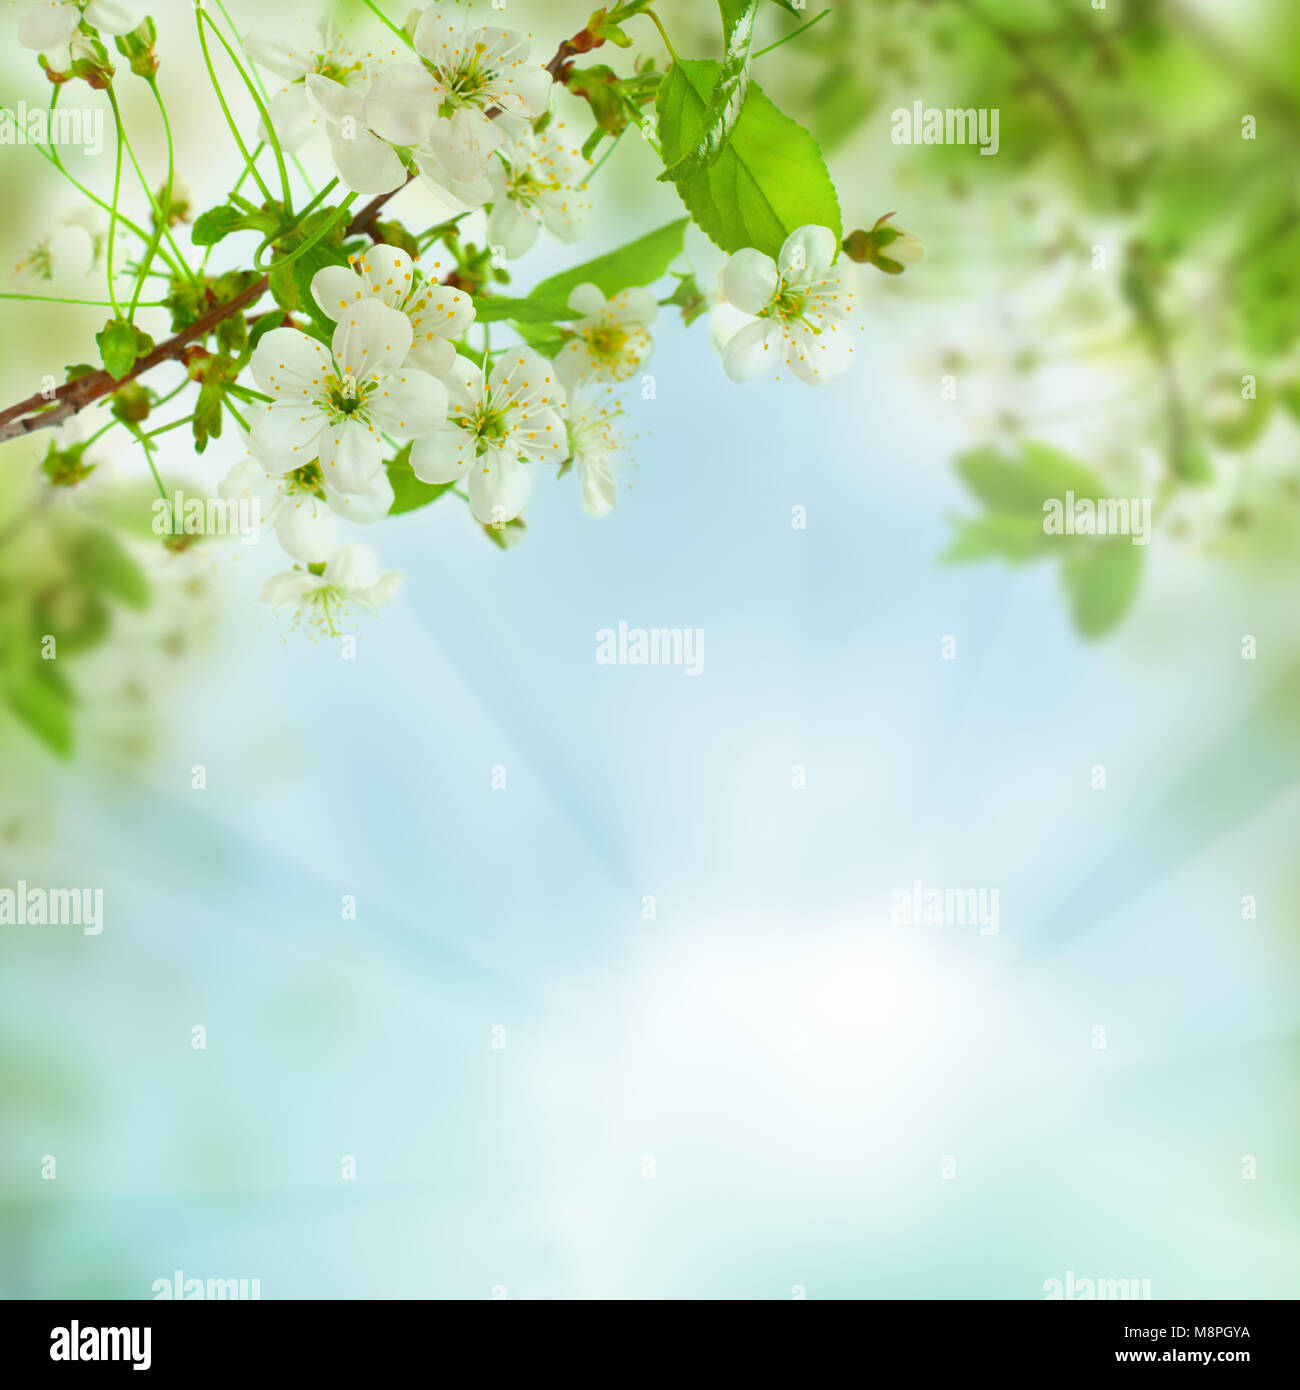 Spring floral background - abstract nature concept with blue sky, leaves and flowers Stock Photo